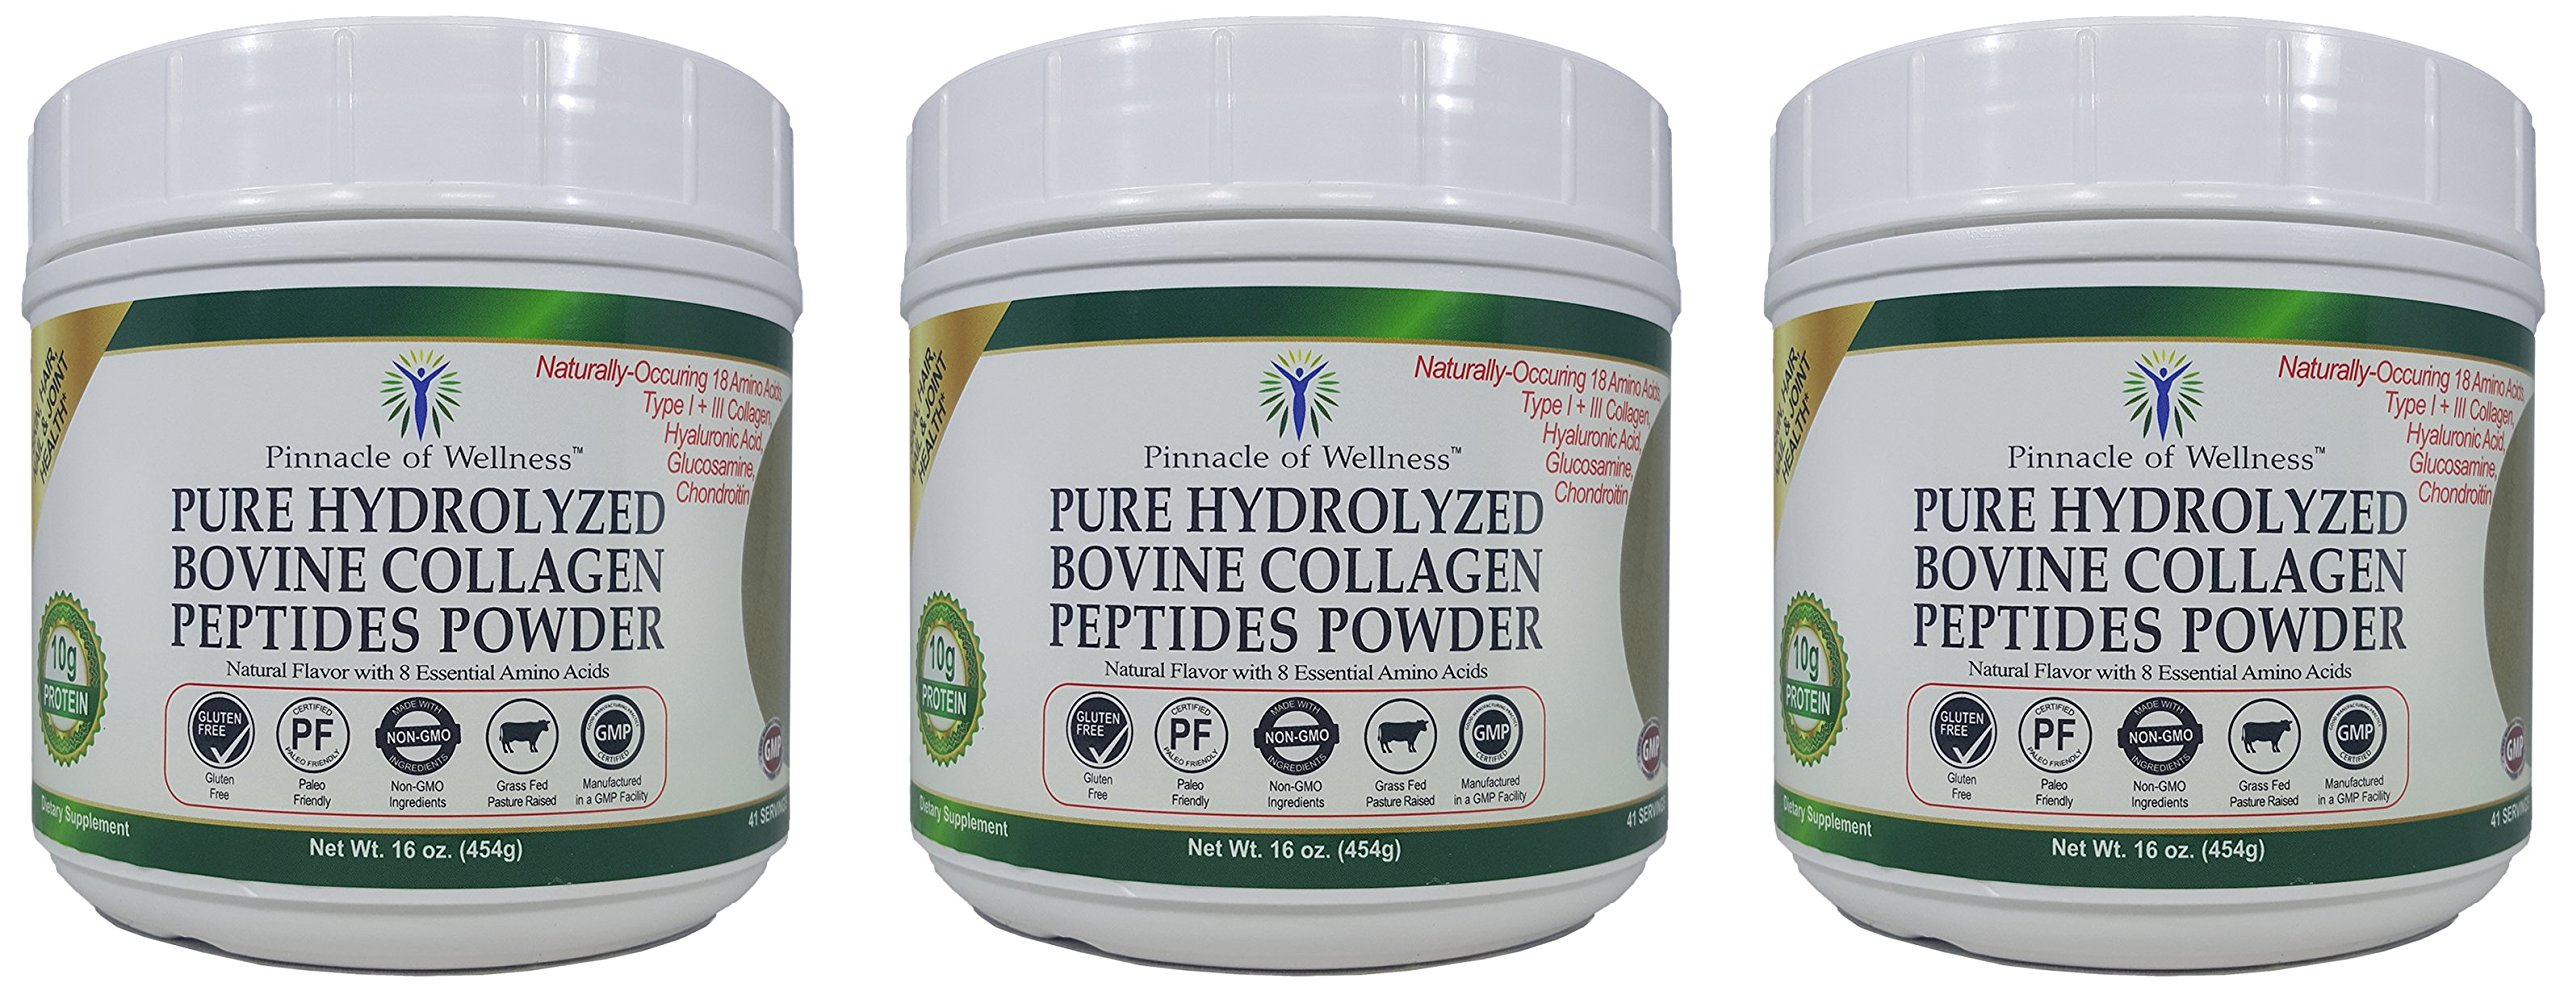 Pinnacle of Wellness Pure Hydrolyzed Bovine Collagen Peptides Powder - Natural Flavor - 41 Servings 16.0oz (454g)